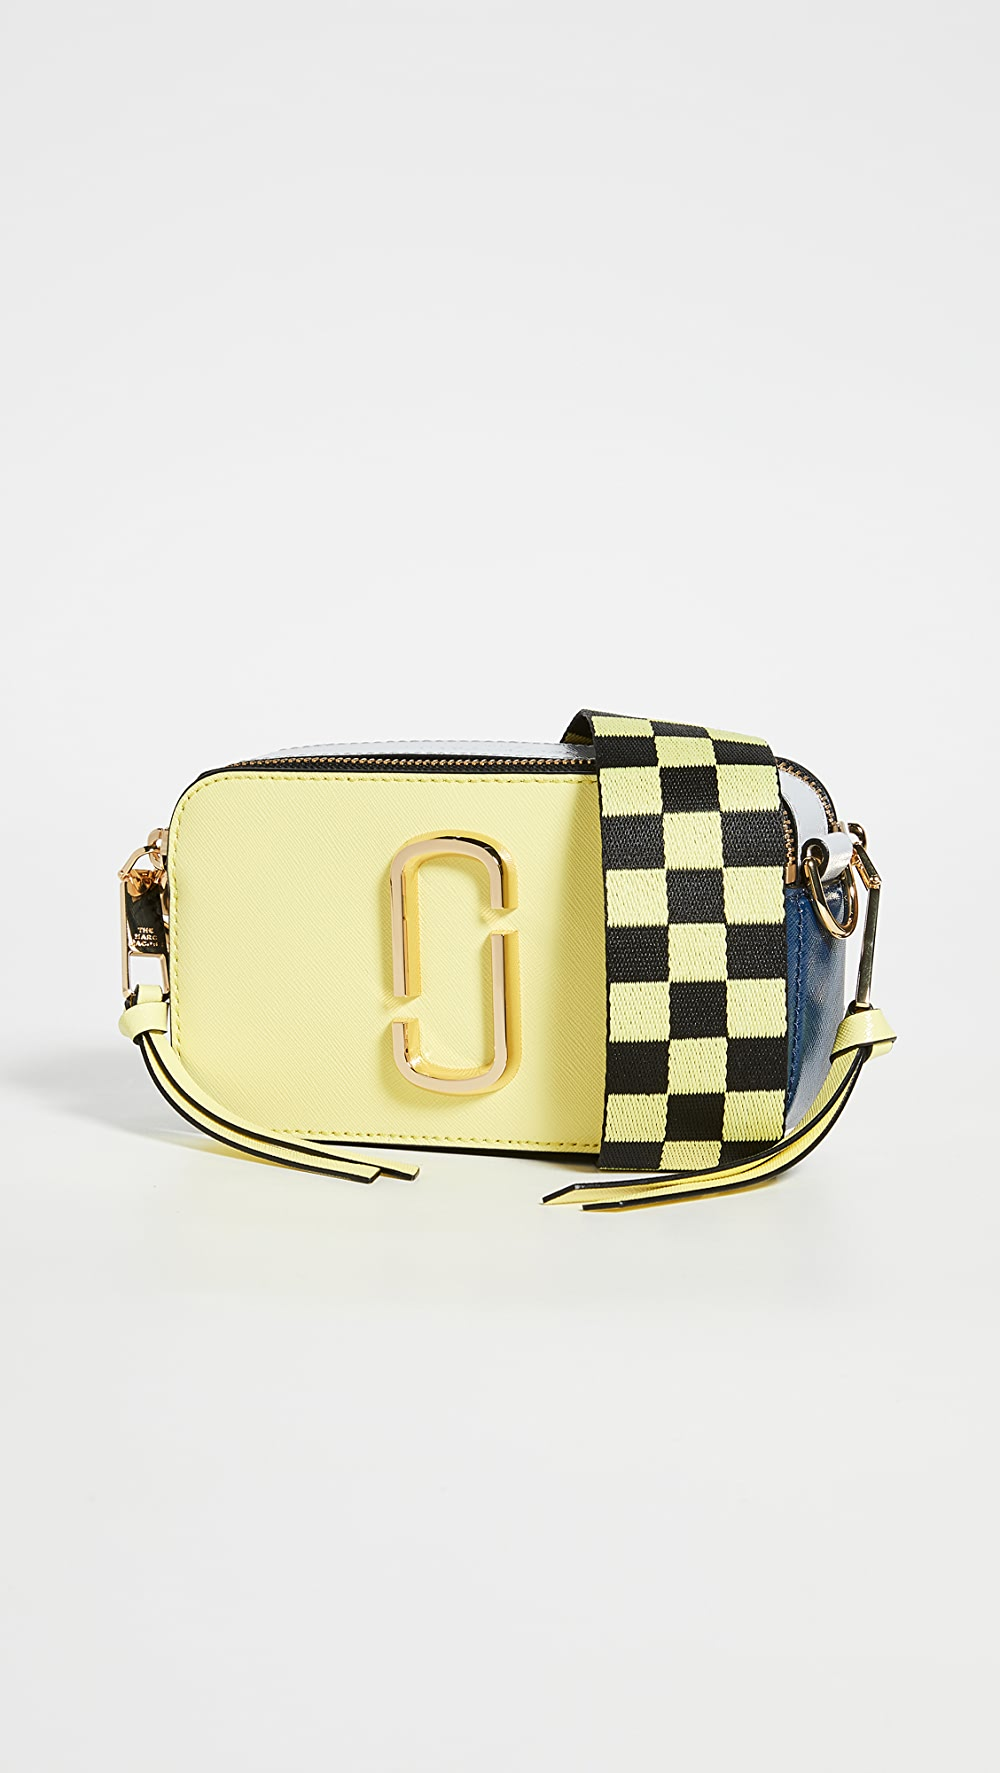 Original The Marc Jacobs - Snapshot Camera Bag Packing Of Nominated Brand